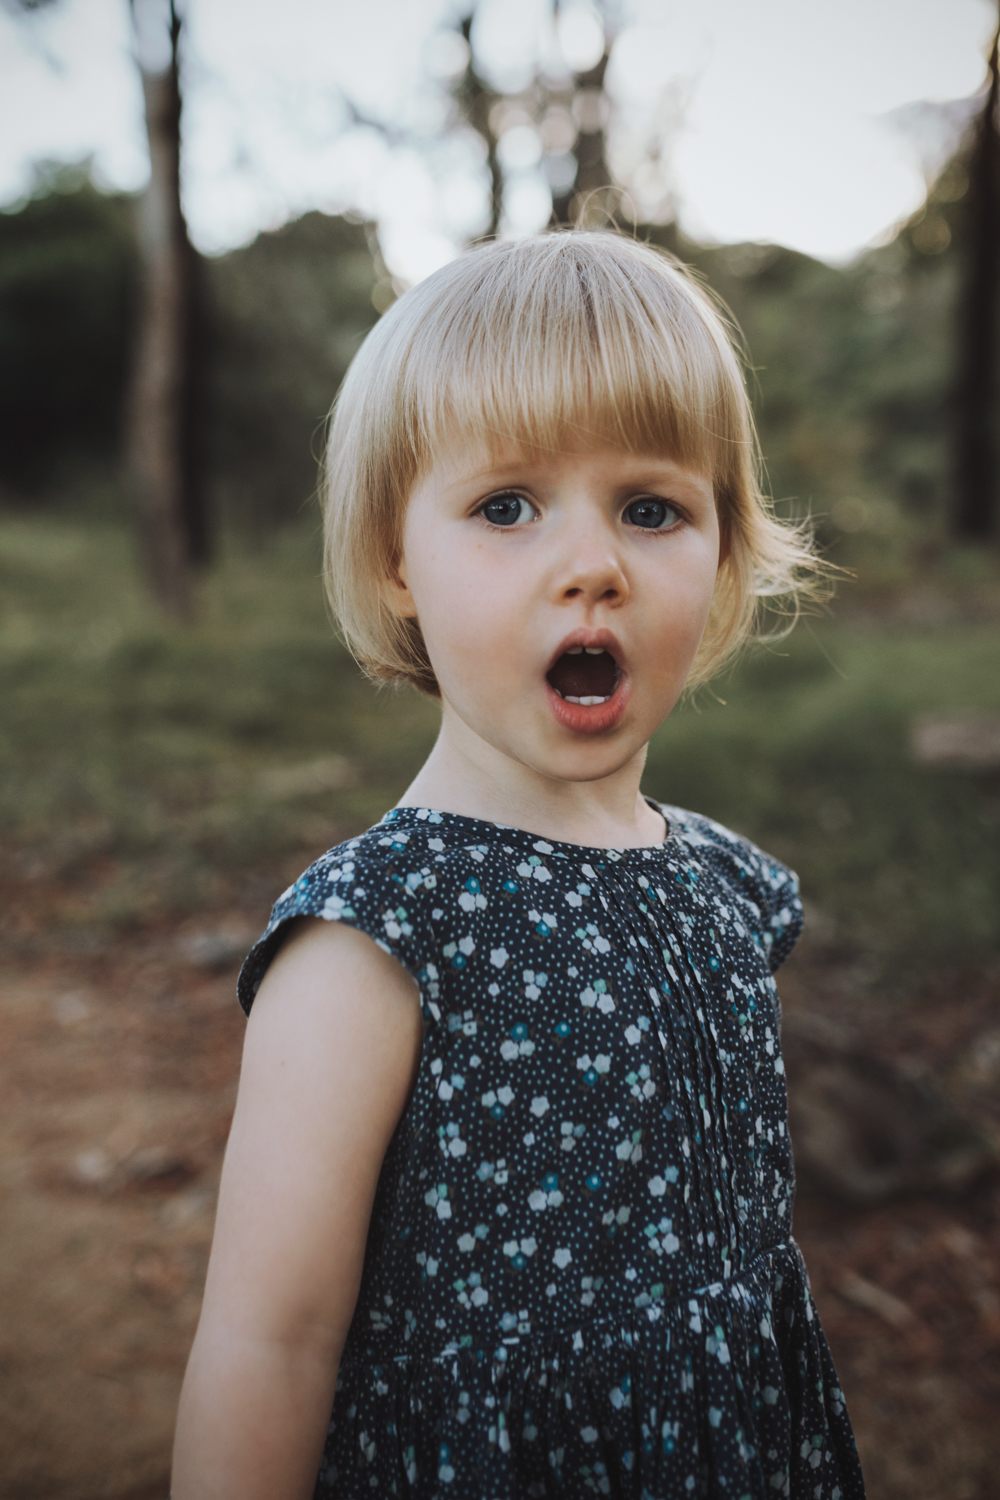 Child with sweet expression stands in nature during casual photo